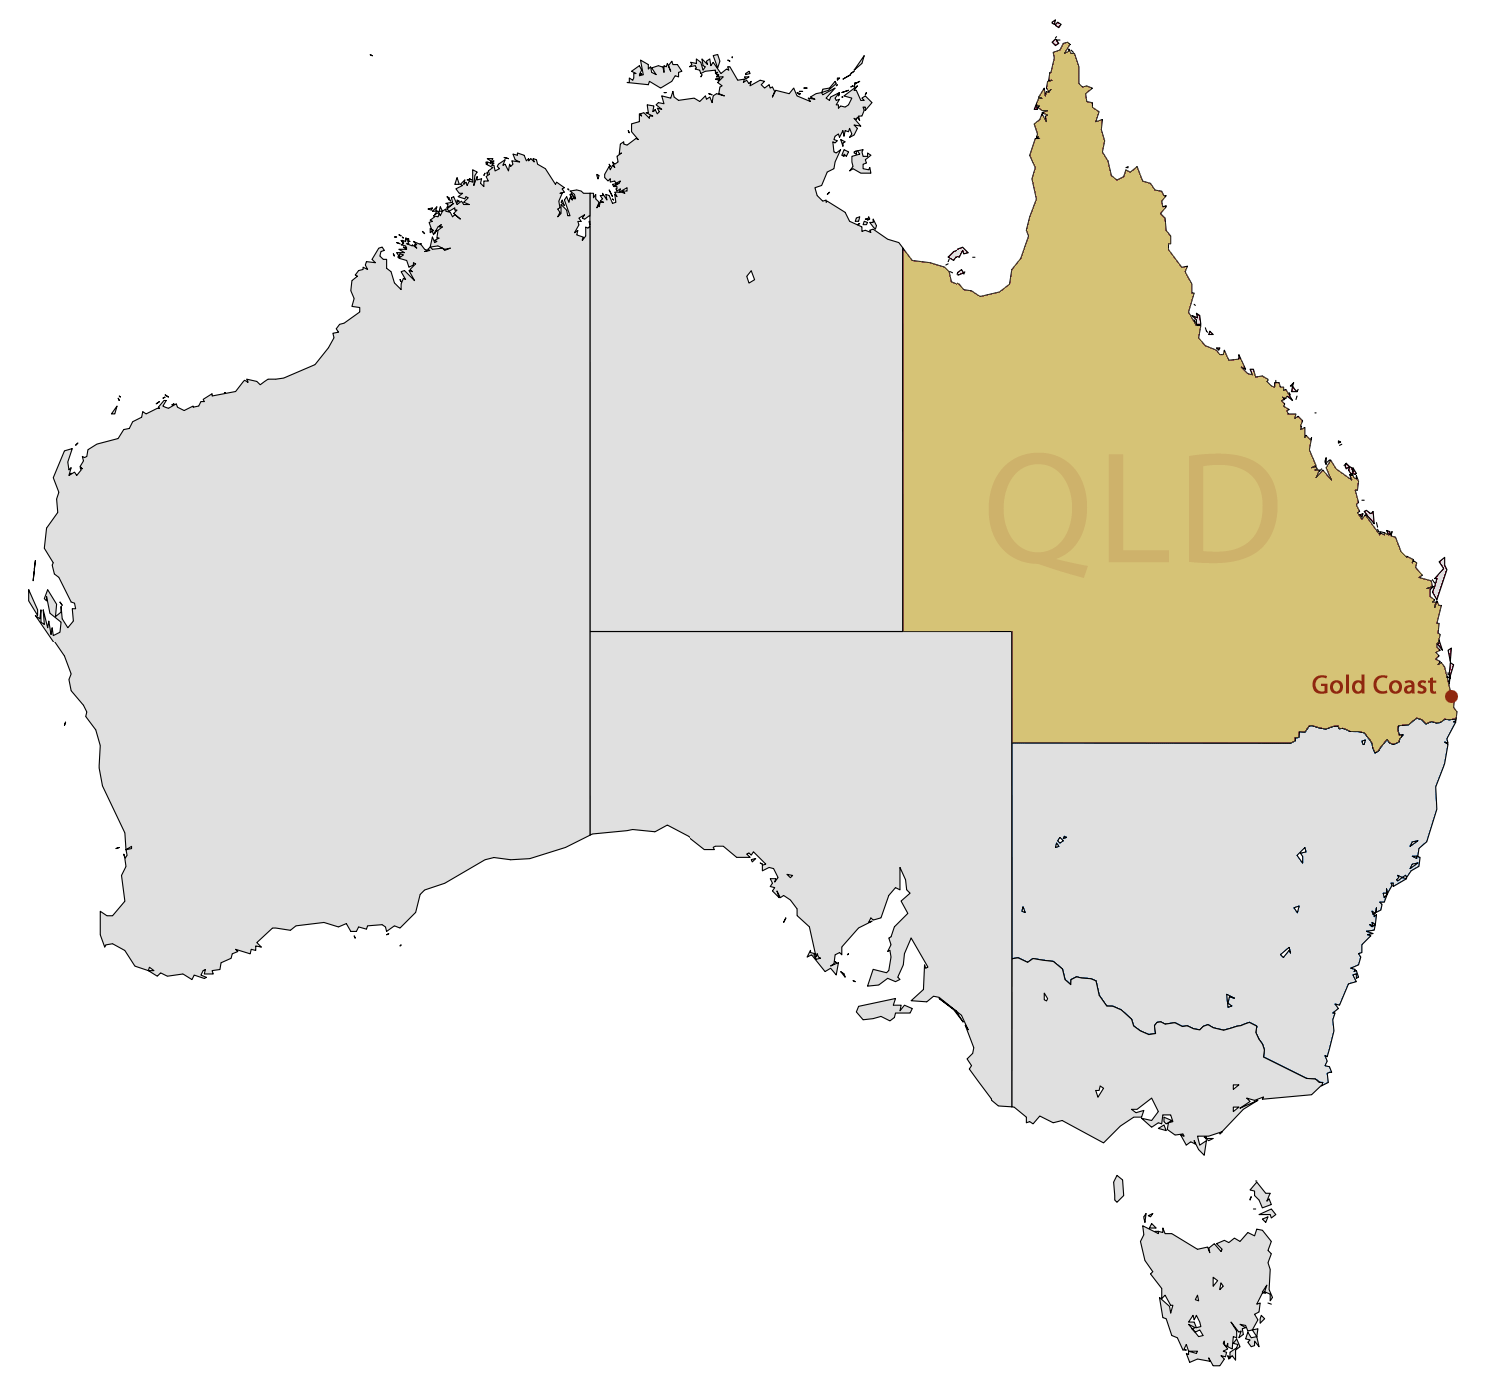 where is the gold coast located